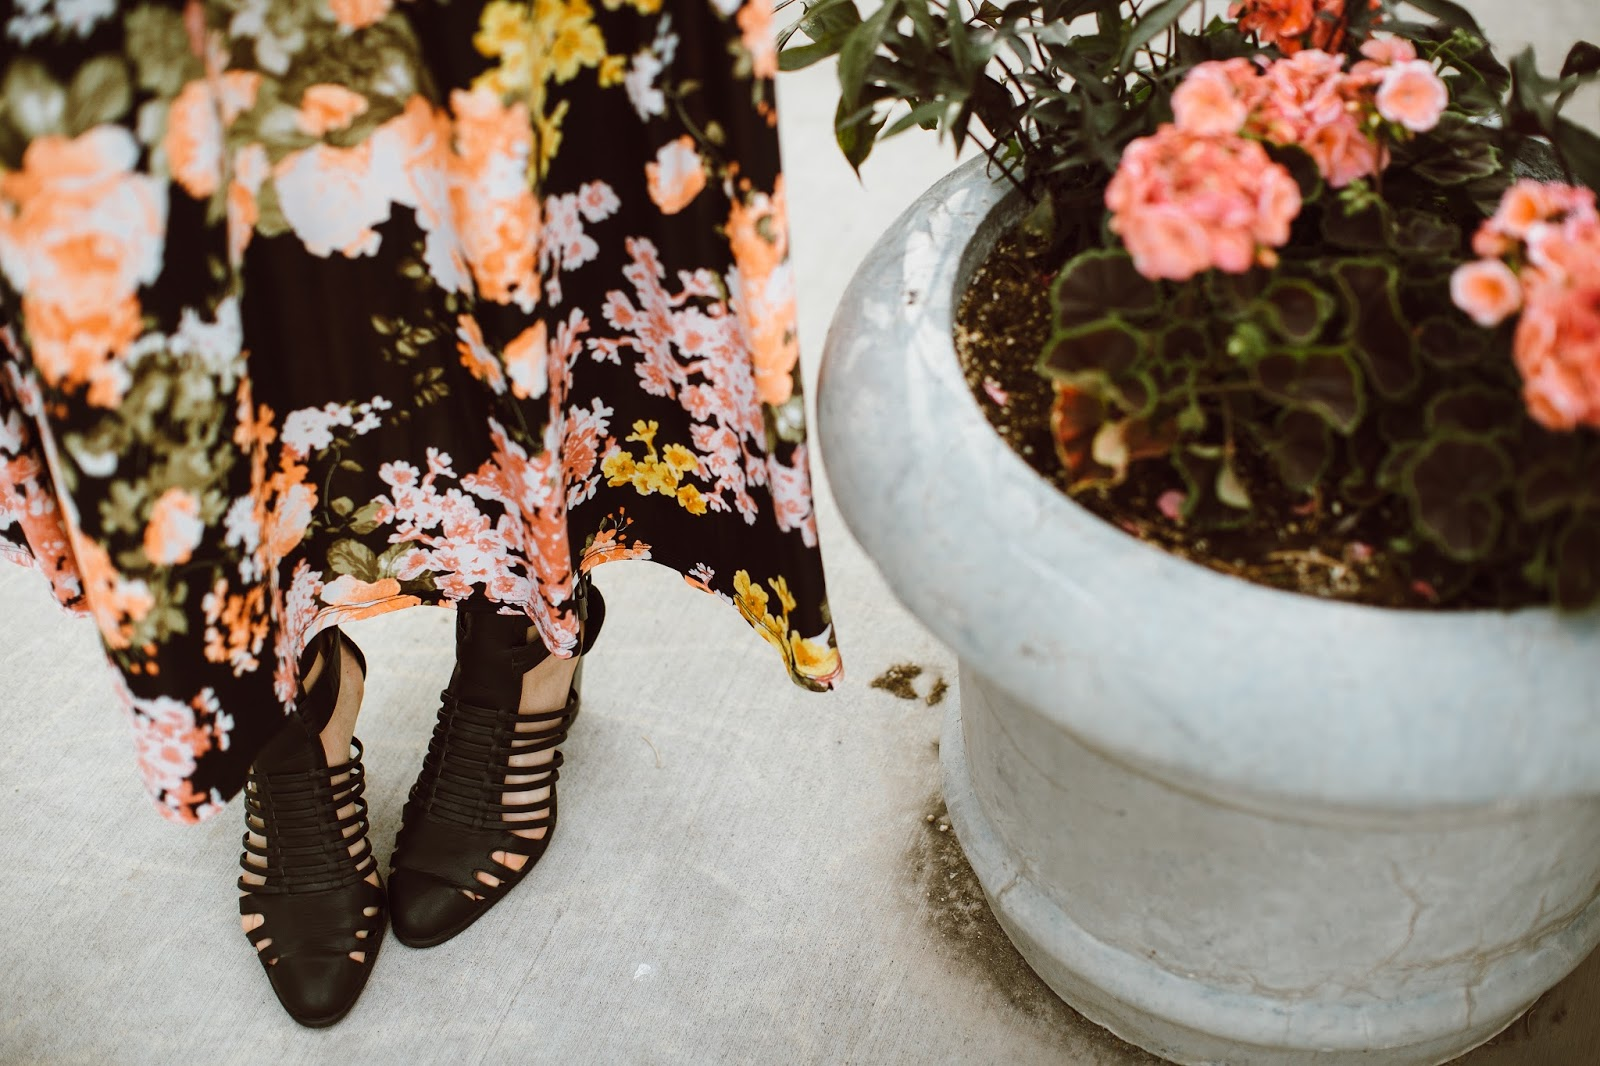 Black Heels, Floral Dress, Shoe Details